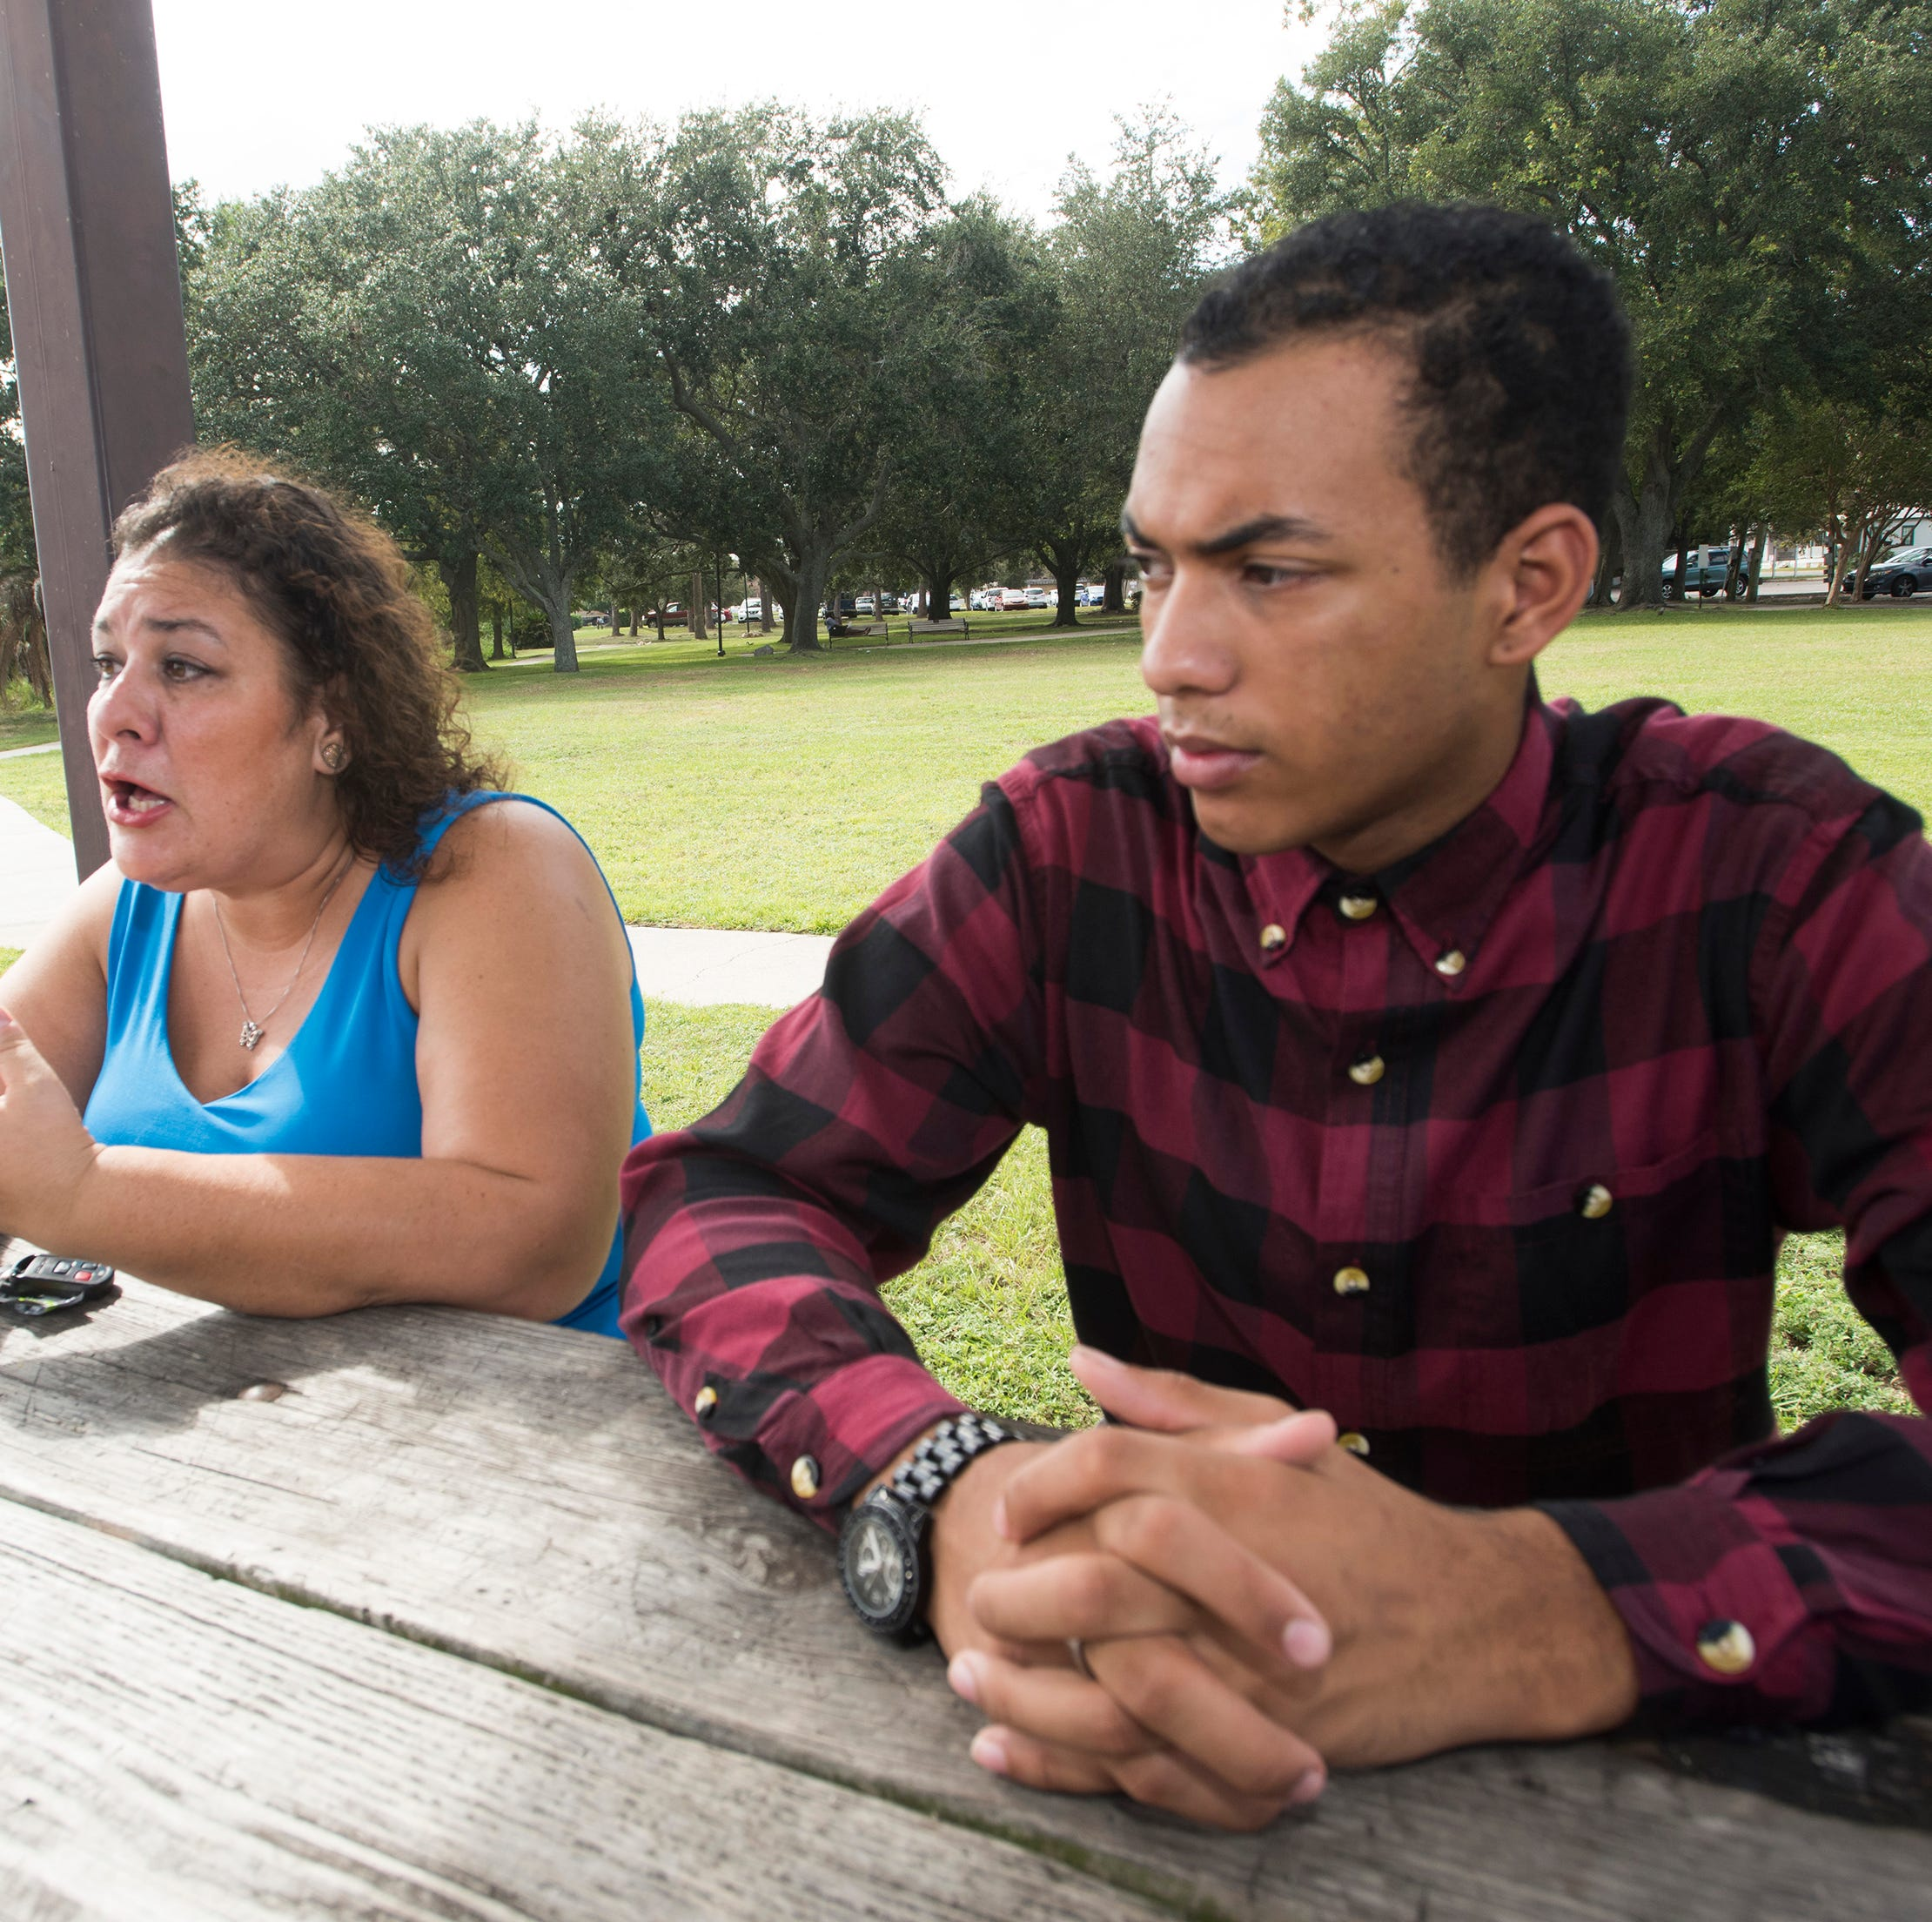 Mom of Pensacola Catholic High teen claims son was victim of hate crime, wants answers